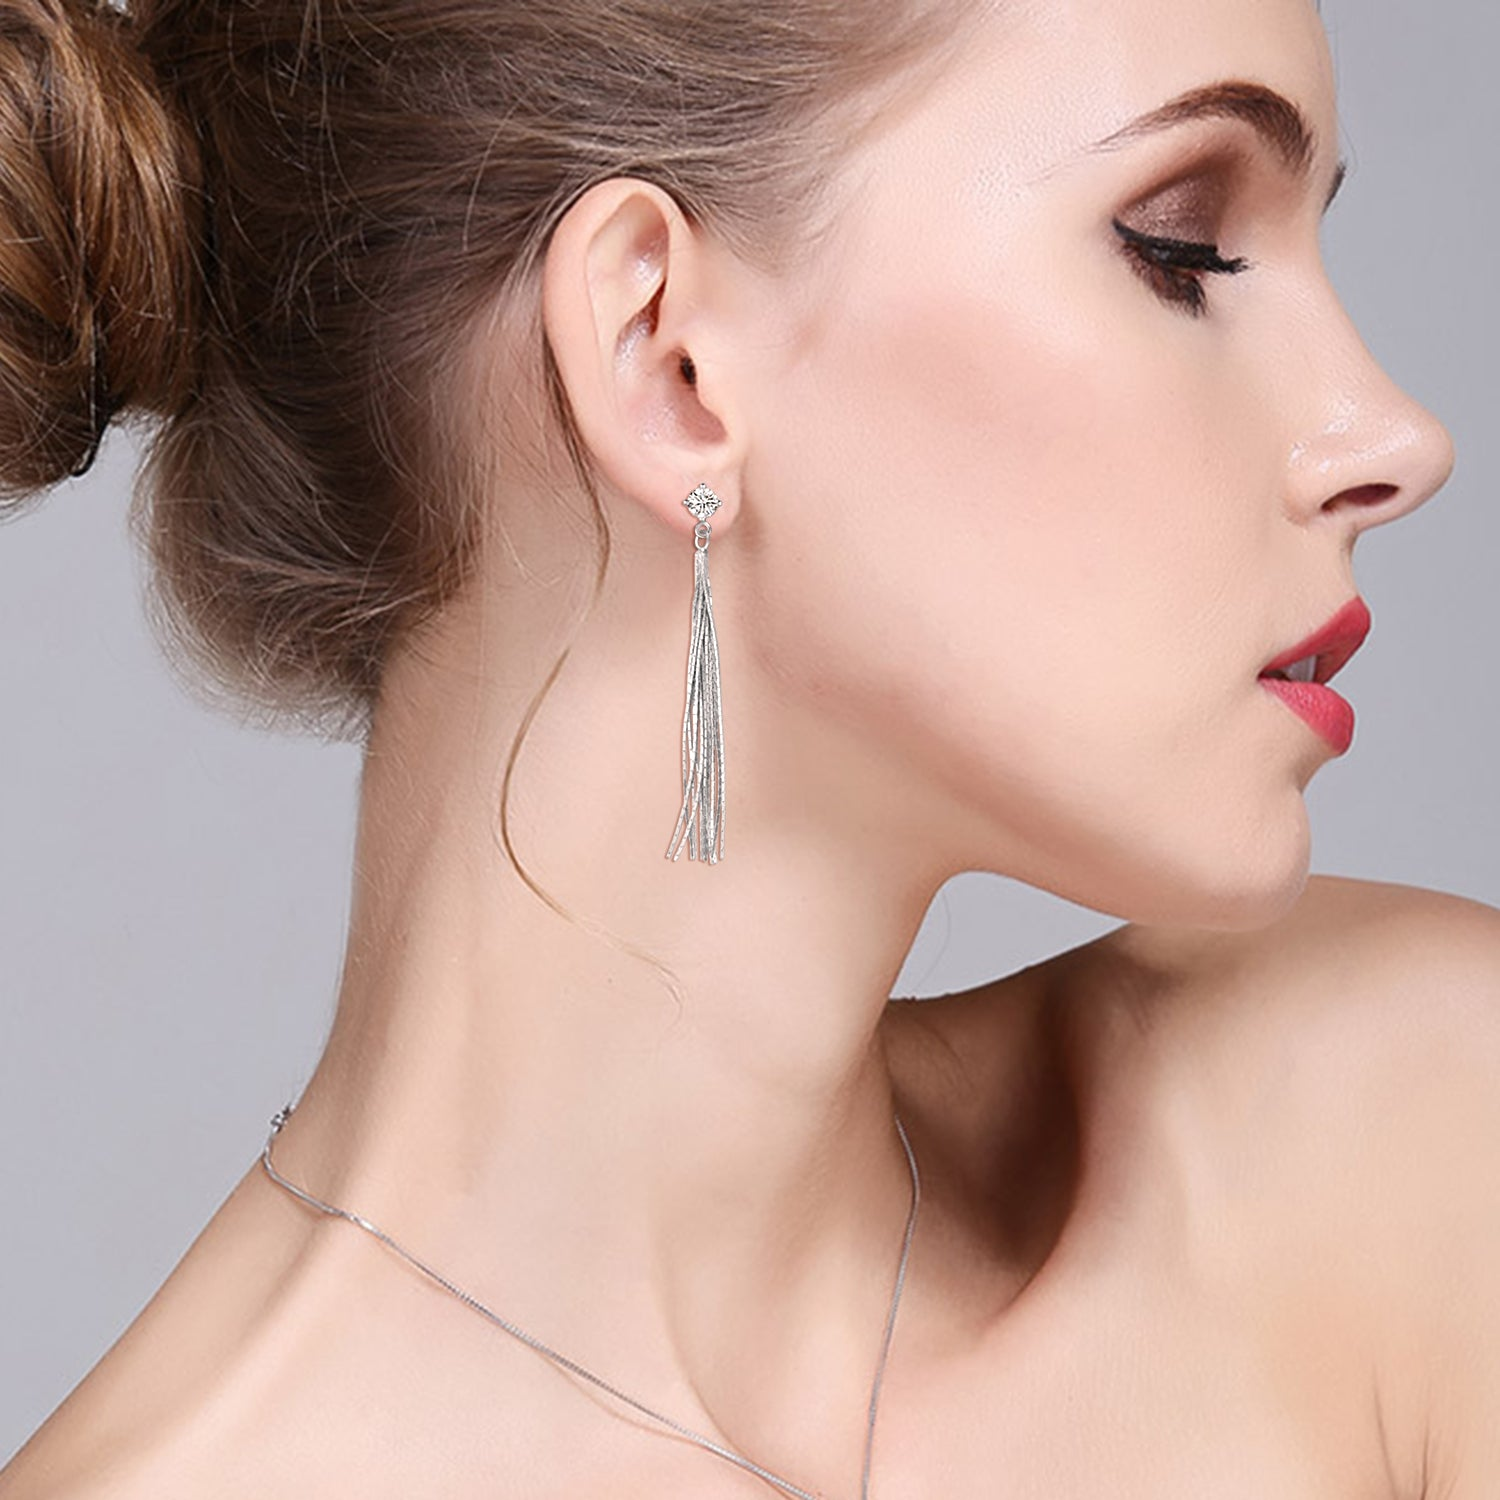 Tassel Earrings Long Fashionable Style for Women Party Silver Earrings